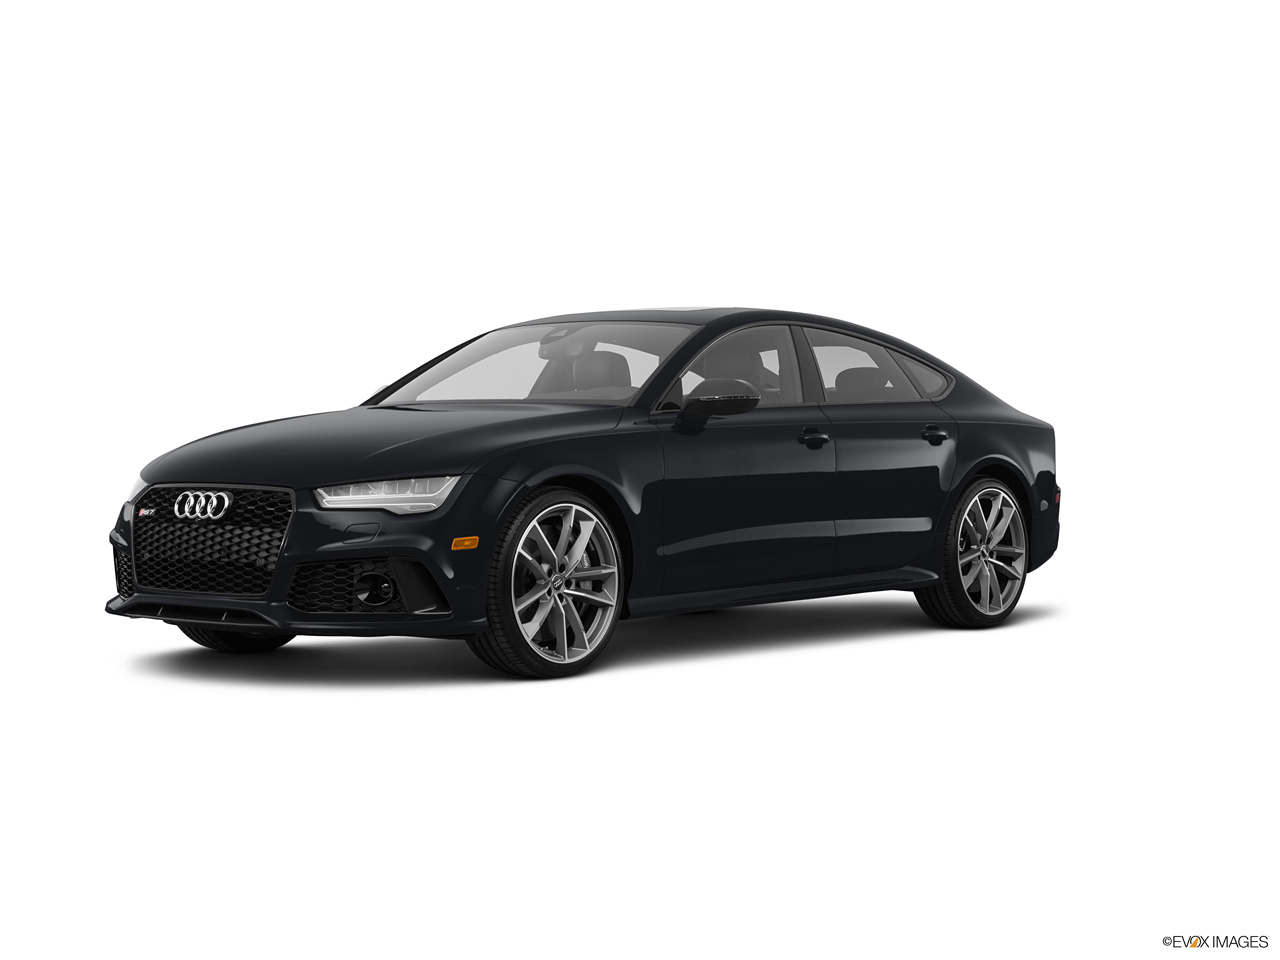 car pictures list for audi rs7 2018 4 0 tfsi quattro 560 hp kuwait yallamotor. Black Bedroom Furniture Sets. Home Design Ideas